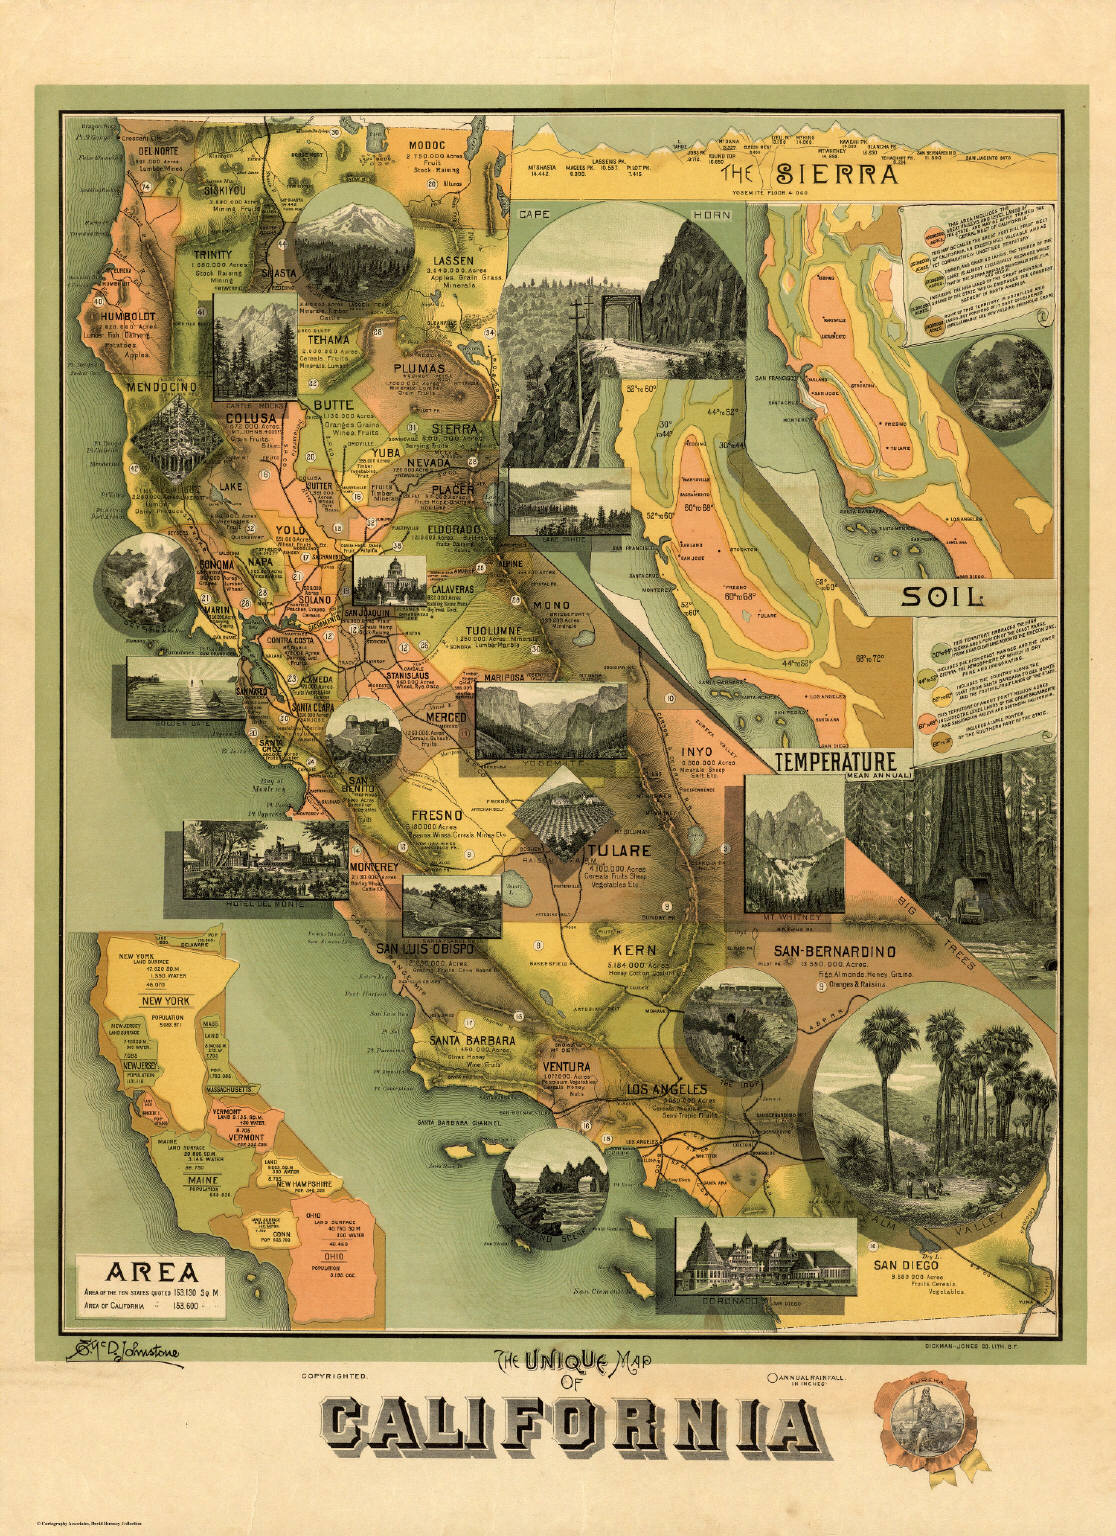 The Unique Map of California. Copyrighted. E. McD. Johnstone. Dickman-Jones Co. Lith. S.F. (1885)